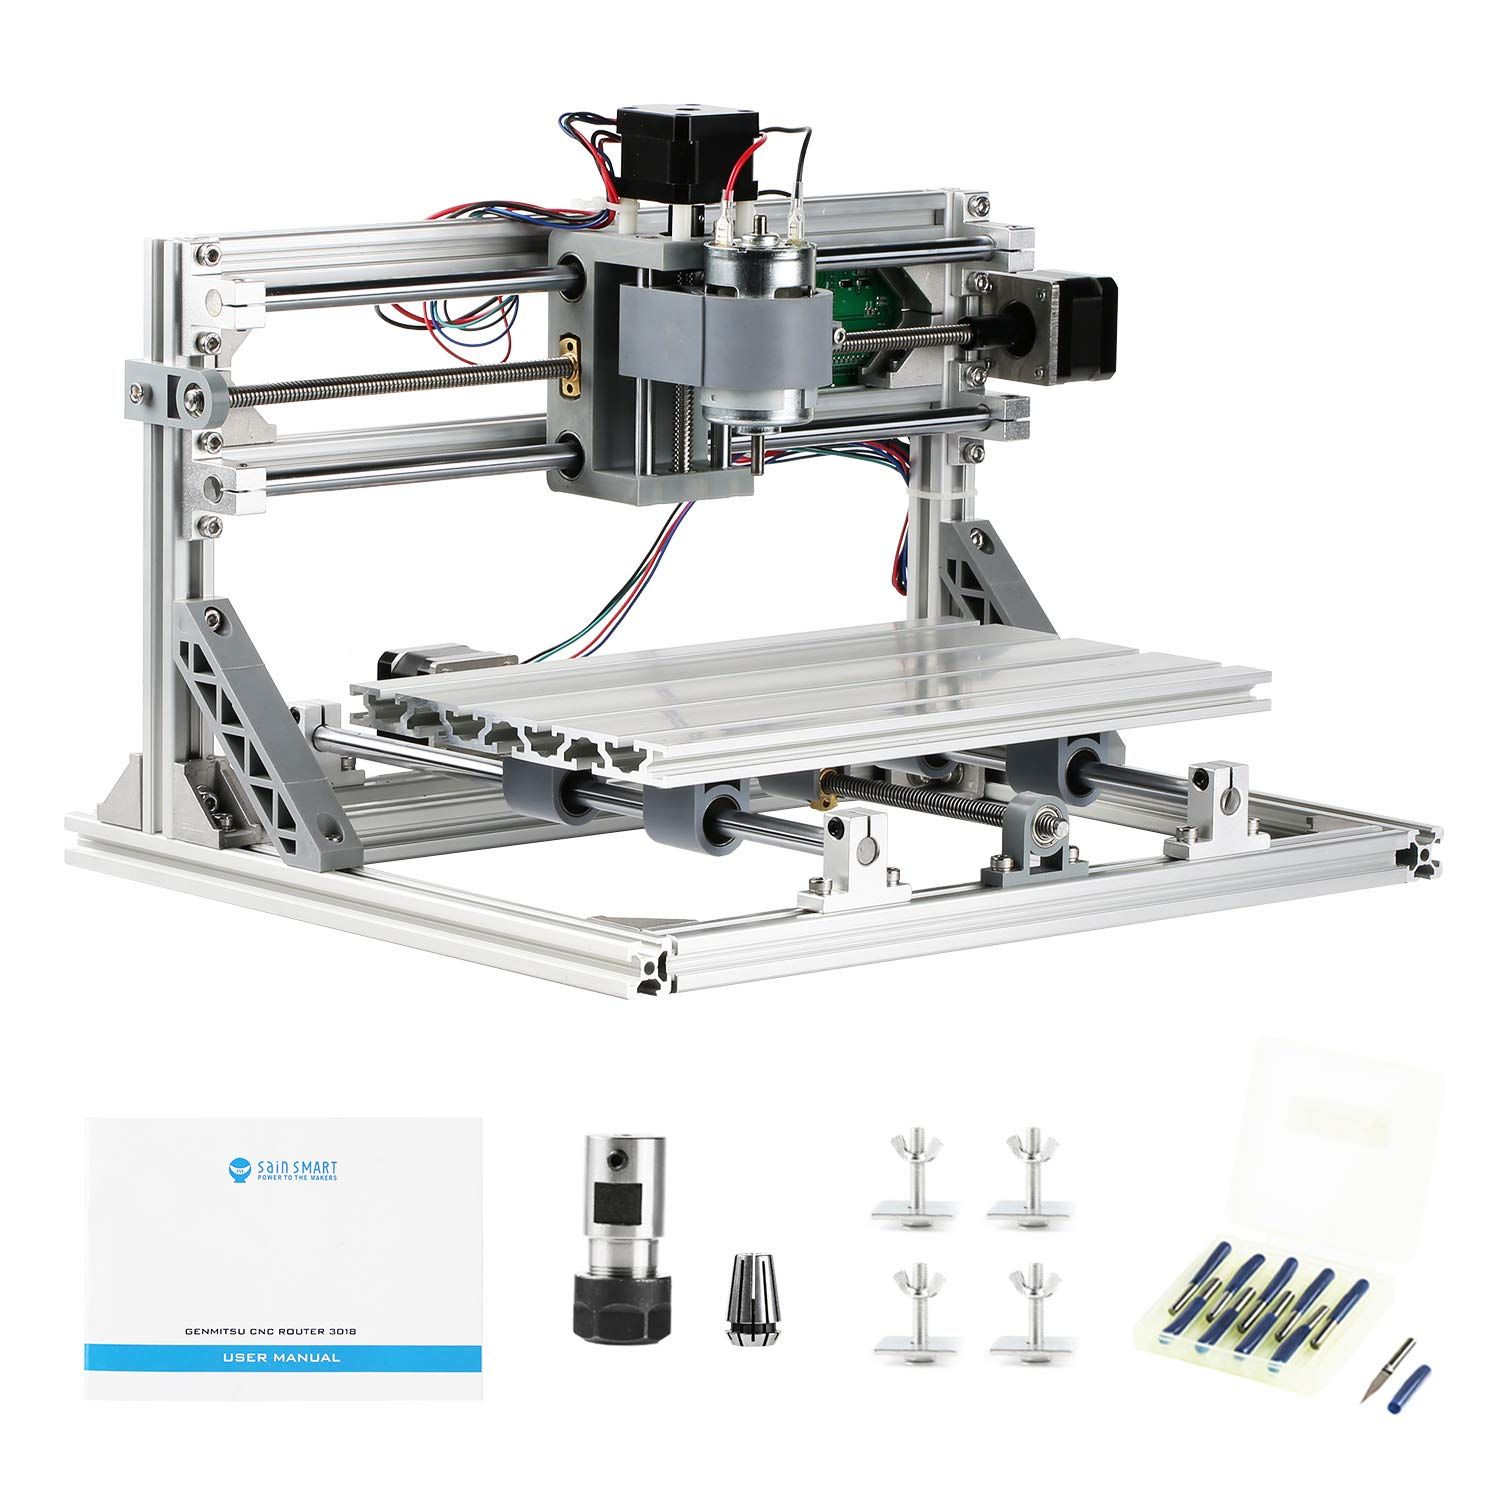 Sainsmart Genmitsu Cnc 3018 Router Kit Grbl Control 3 Axis Plastic Pcb Cutting Machine Sewing Modification Electronics Projects Acrylic Pvc Wood Carving Milling Engraving Xyz Working Area 300x180x45mm